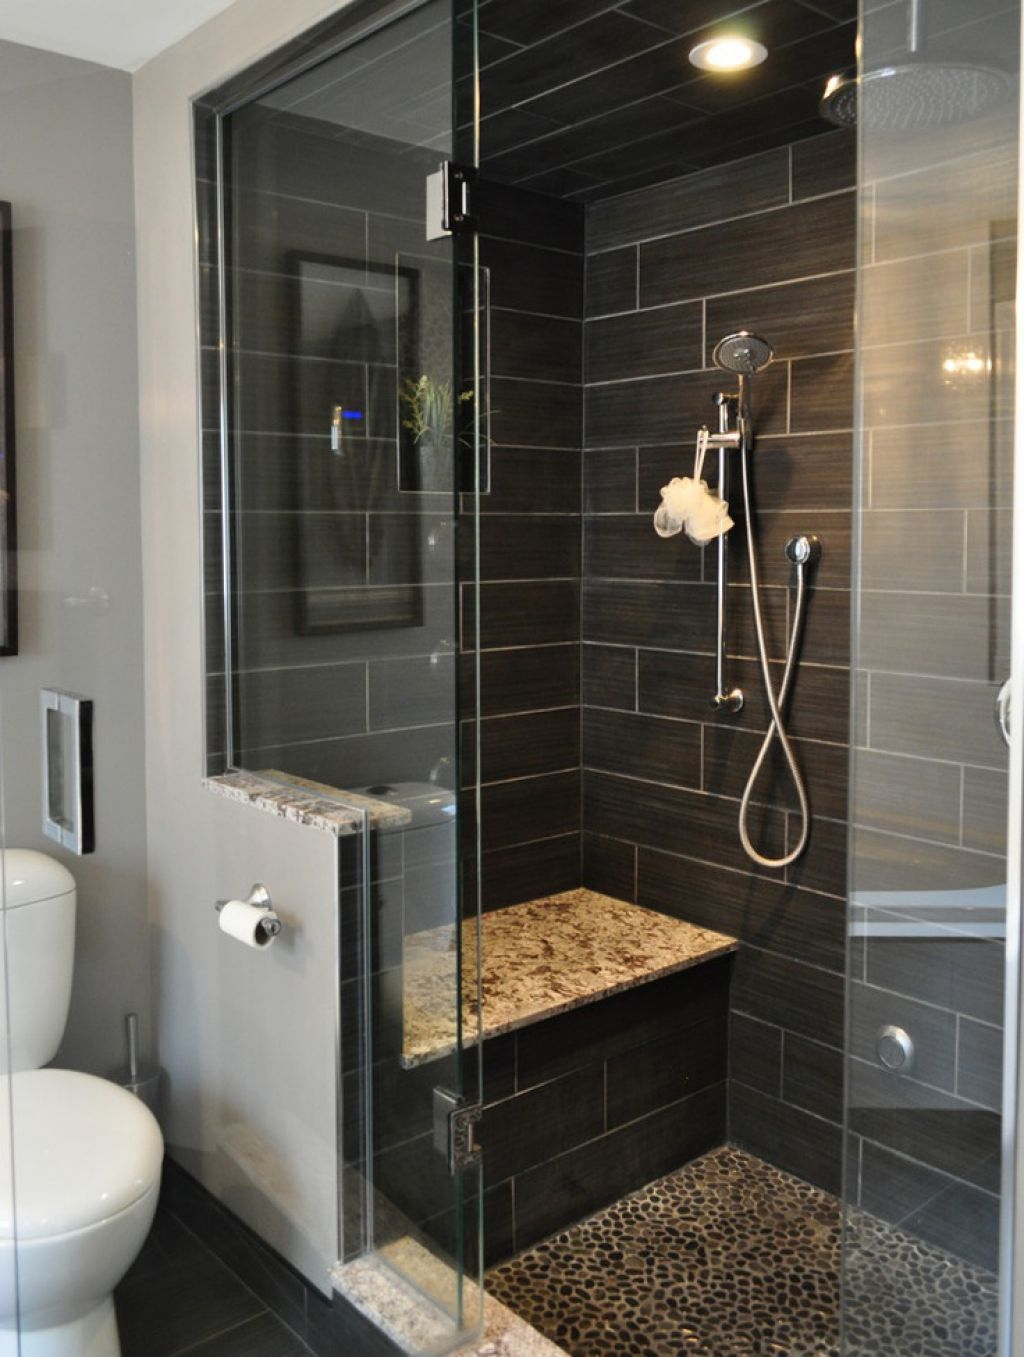 Bathroom Shower Designed With Black Slate Tiles And Built In Bench Small Bathroom Remodel Bathroom Remodel Master Bathrooms Remodel